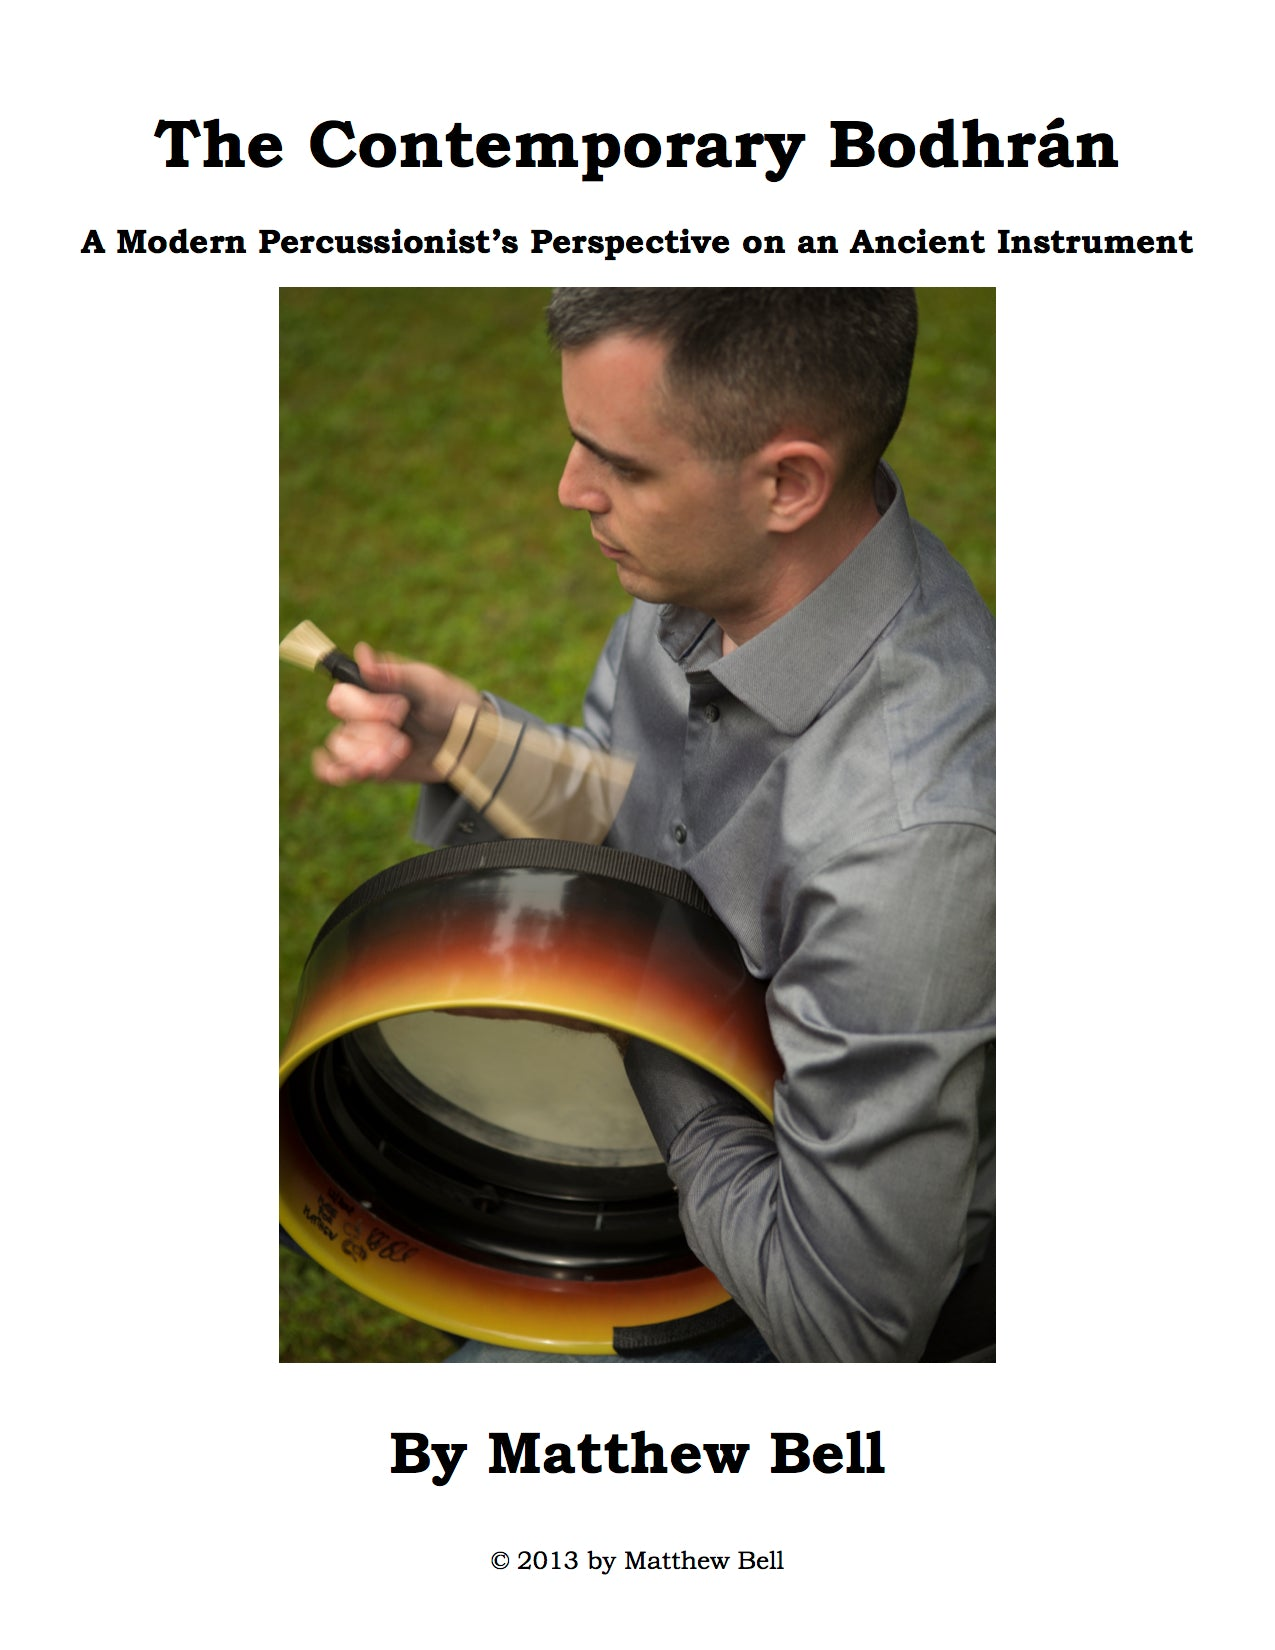 The Contemporary Bodhrán: A Modern Percussionist's Perspective on an Ancient Instrument (Digital Download)